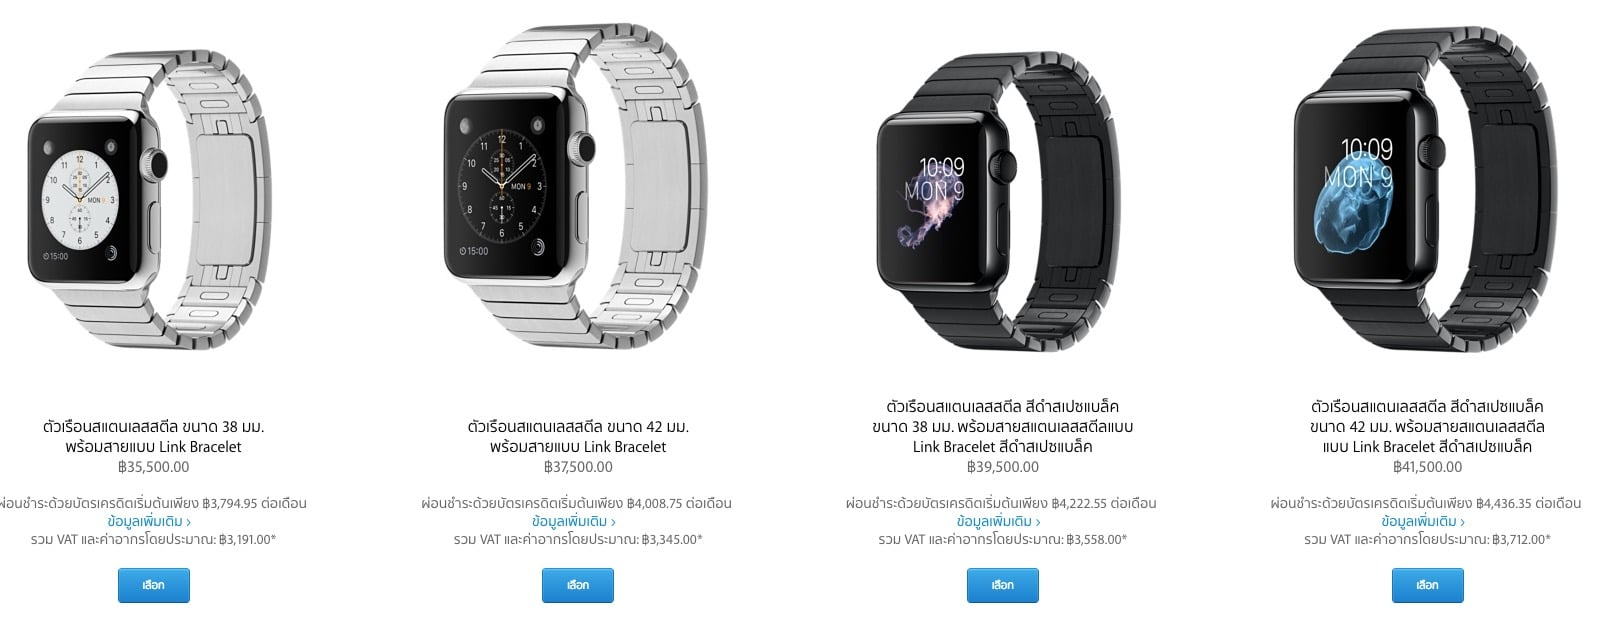 apple-watch-price-in-thailand-sport-collection-stainless-steel-edition.29 PM